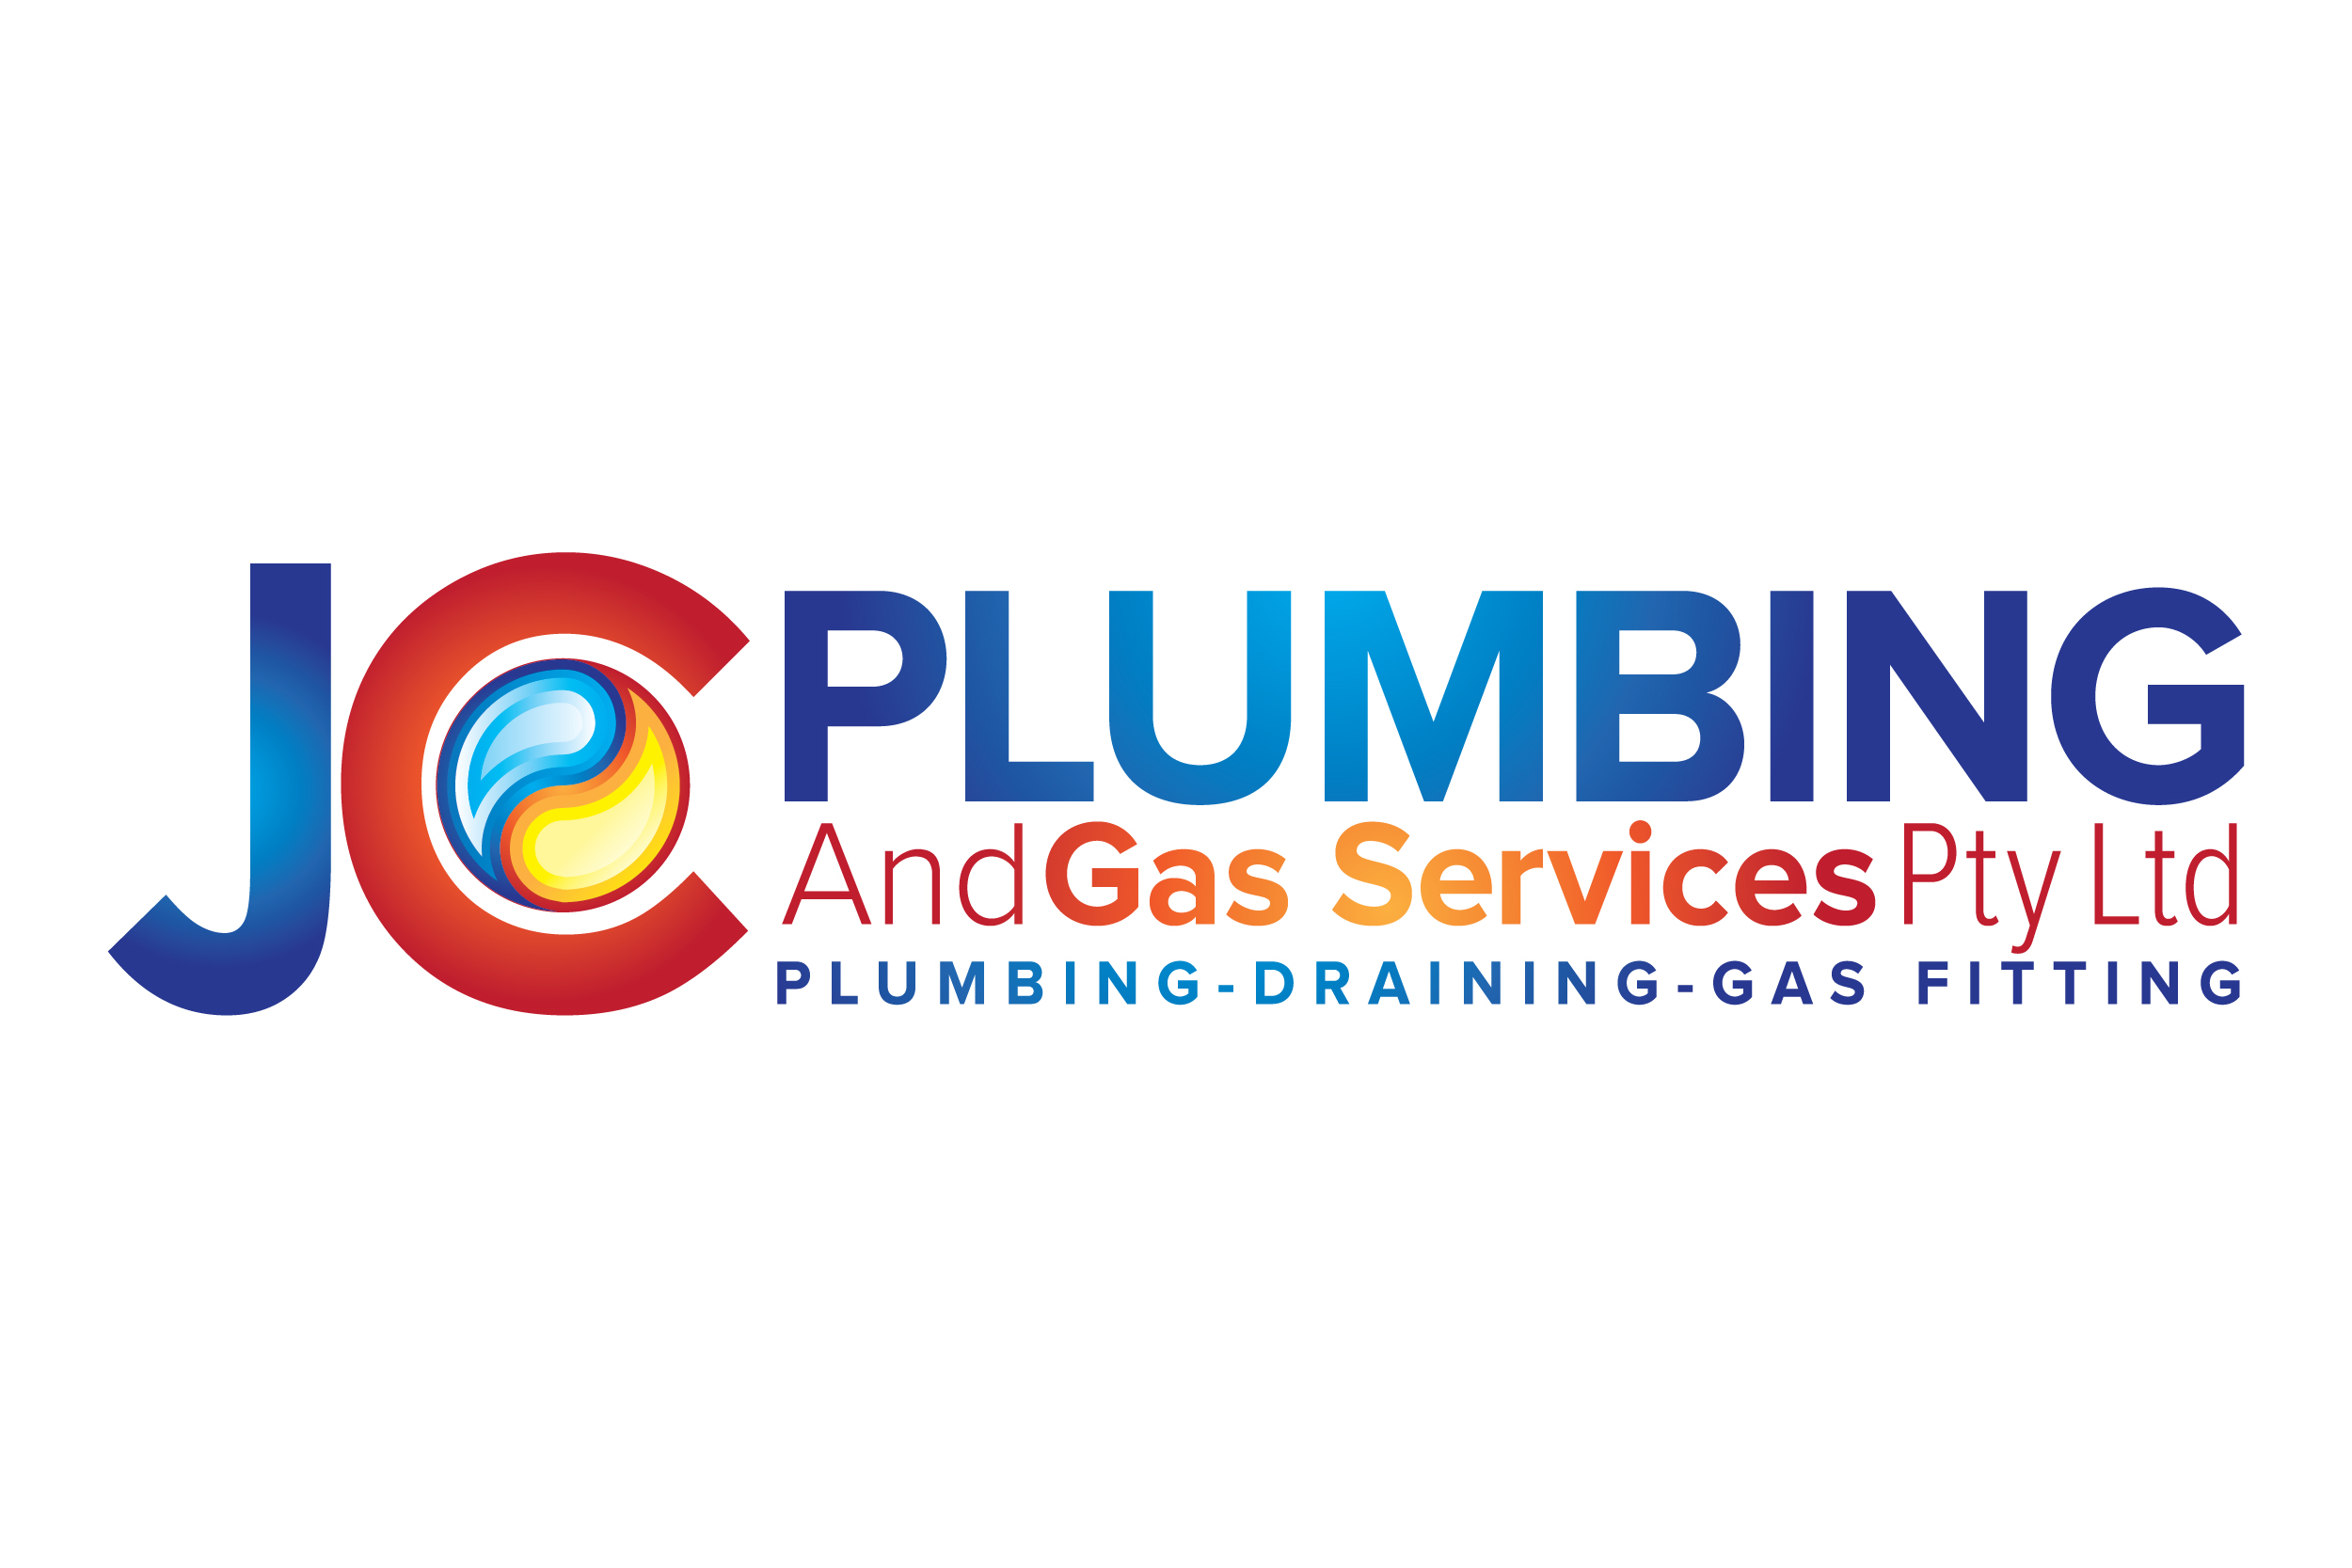 General Plumbing Jc Plumbing And Gas Services